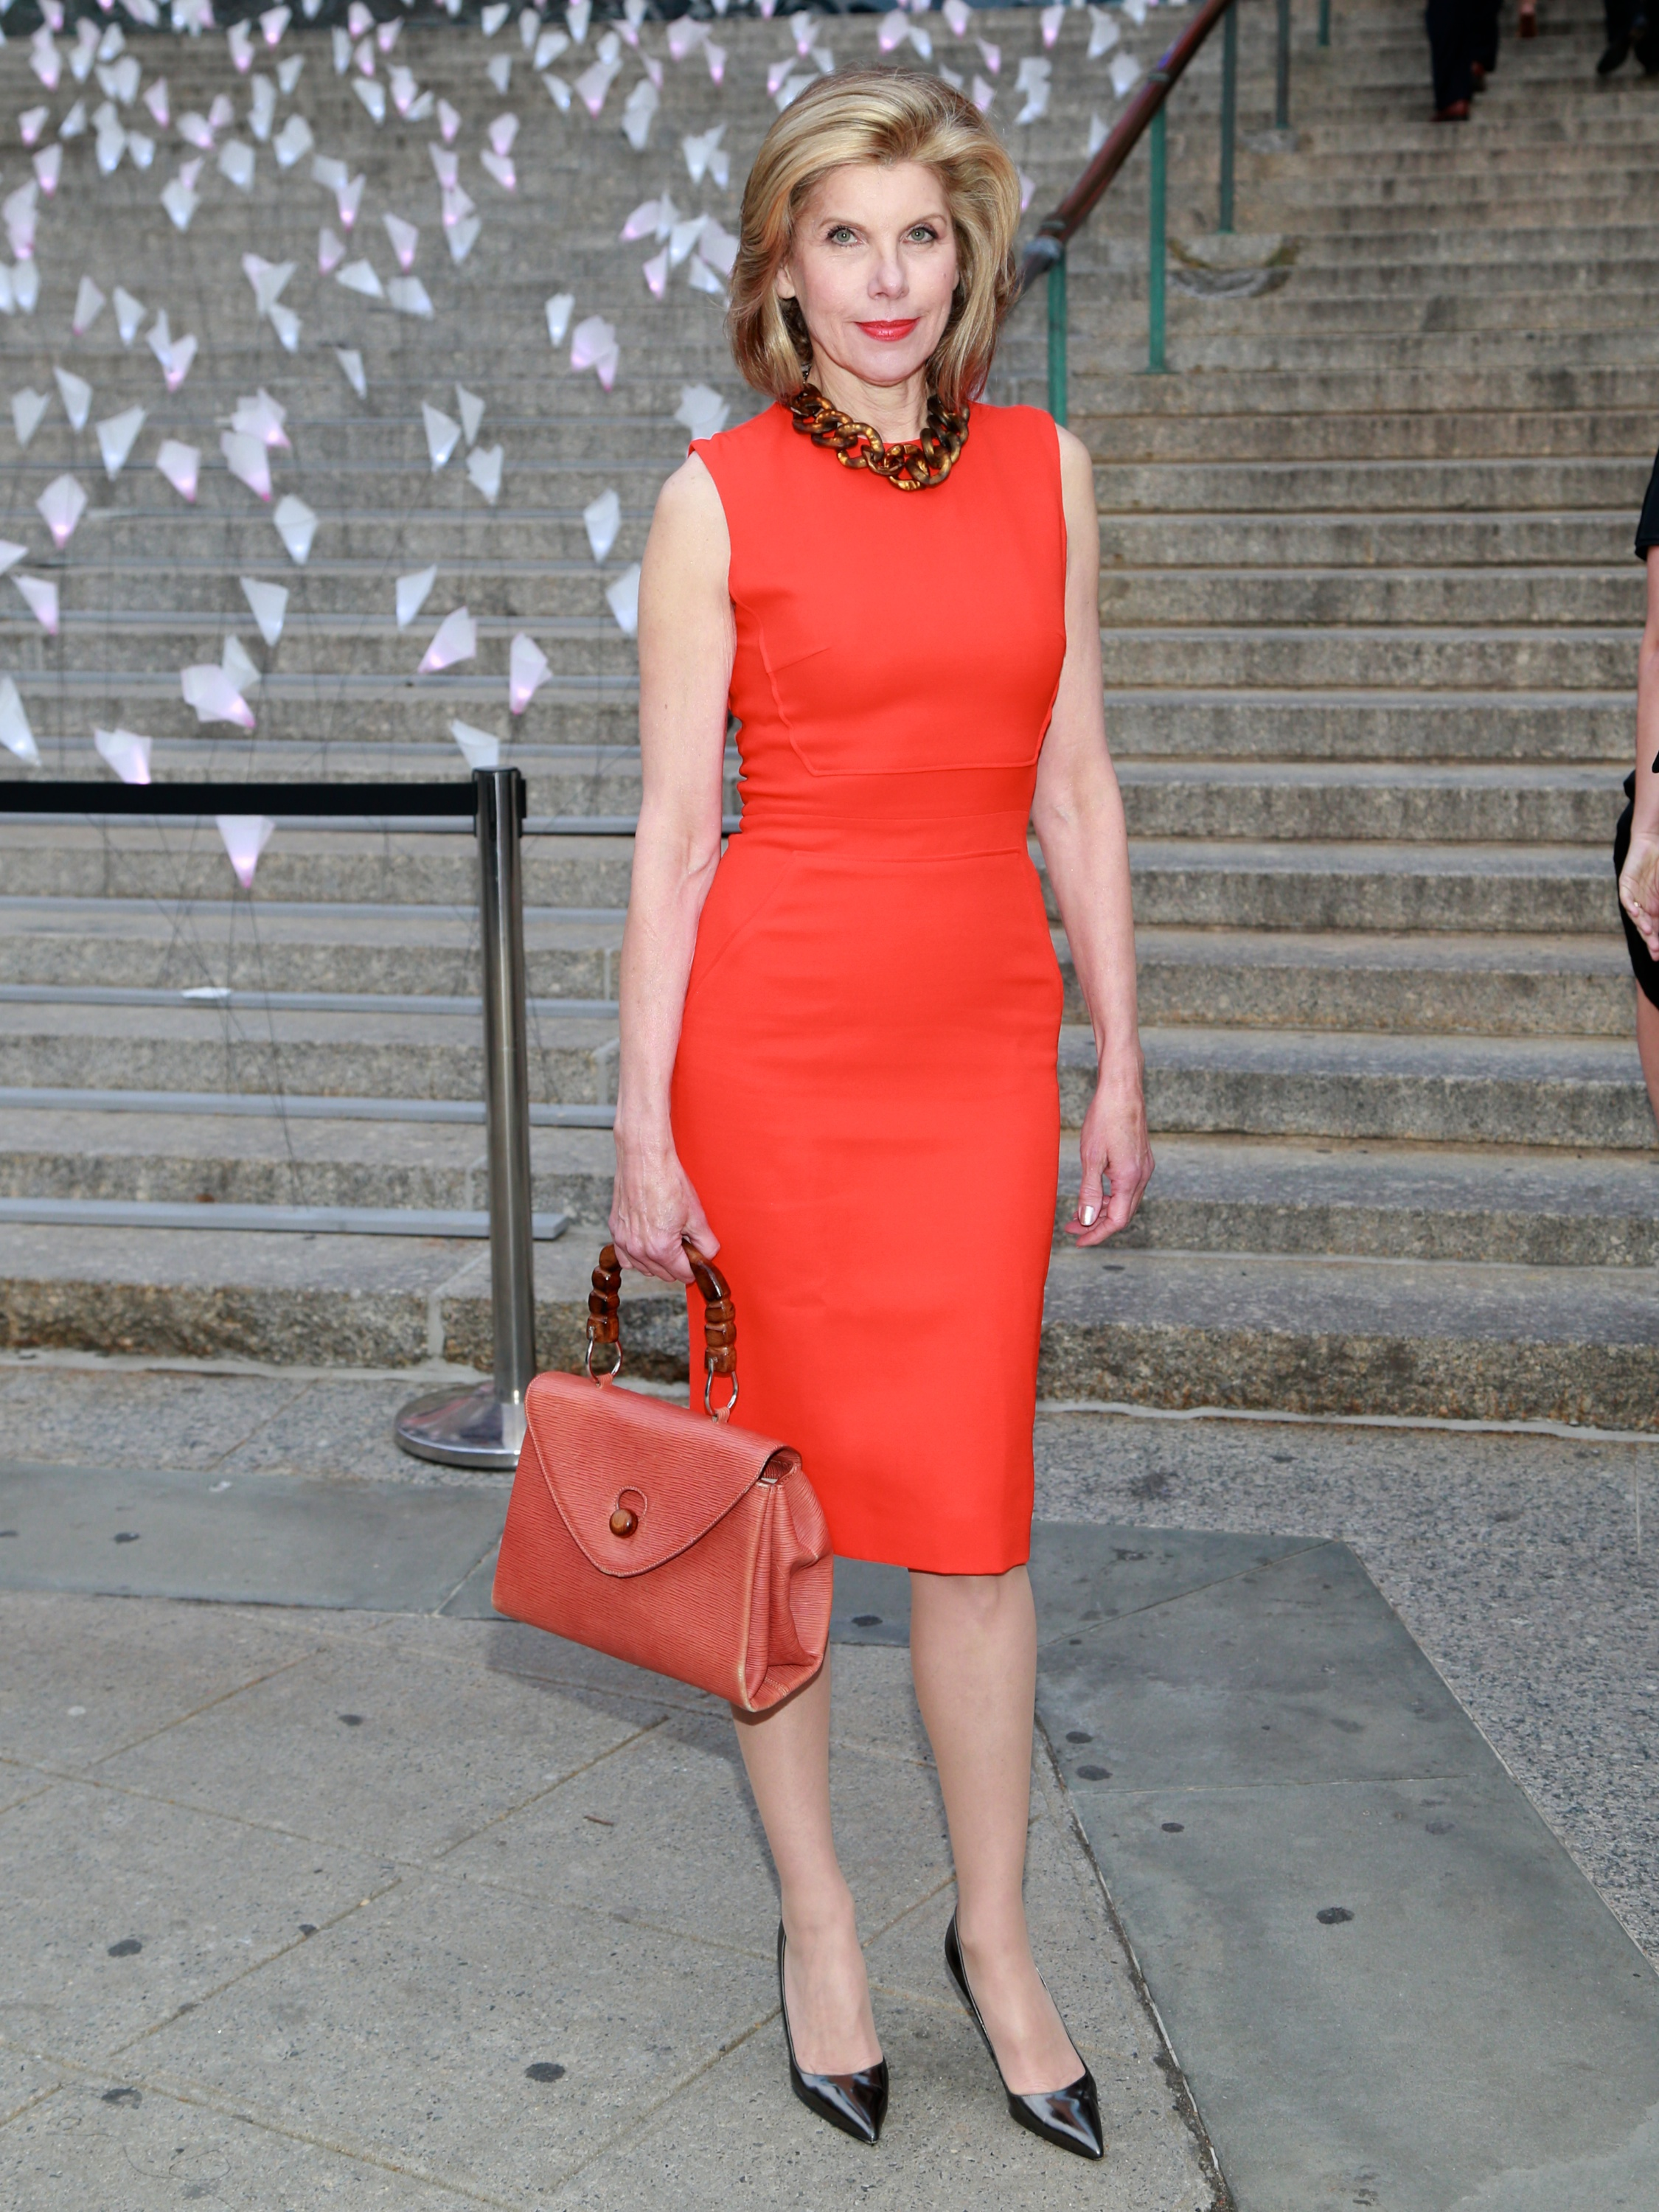 At Vanity Fair's Tribeca Film Festival party, Christine Baranski wore a red dress and held a matching red bag.